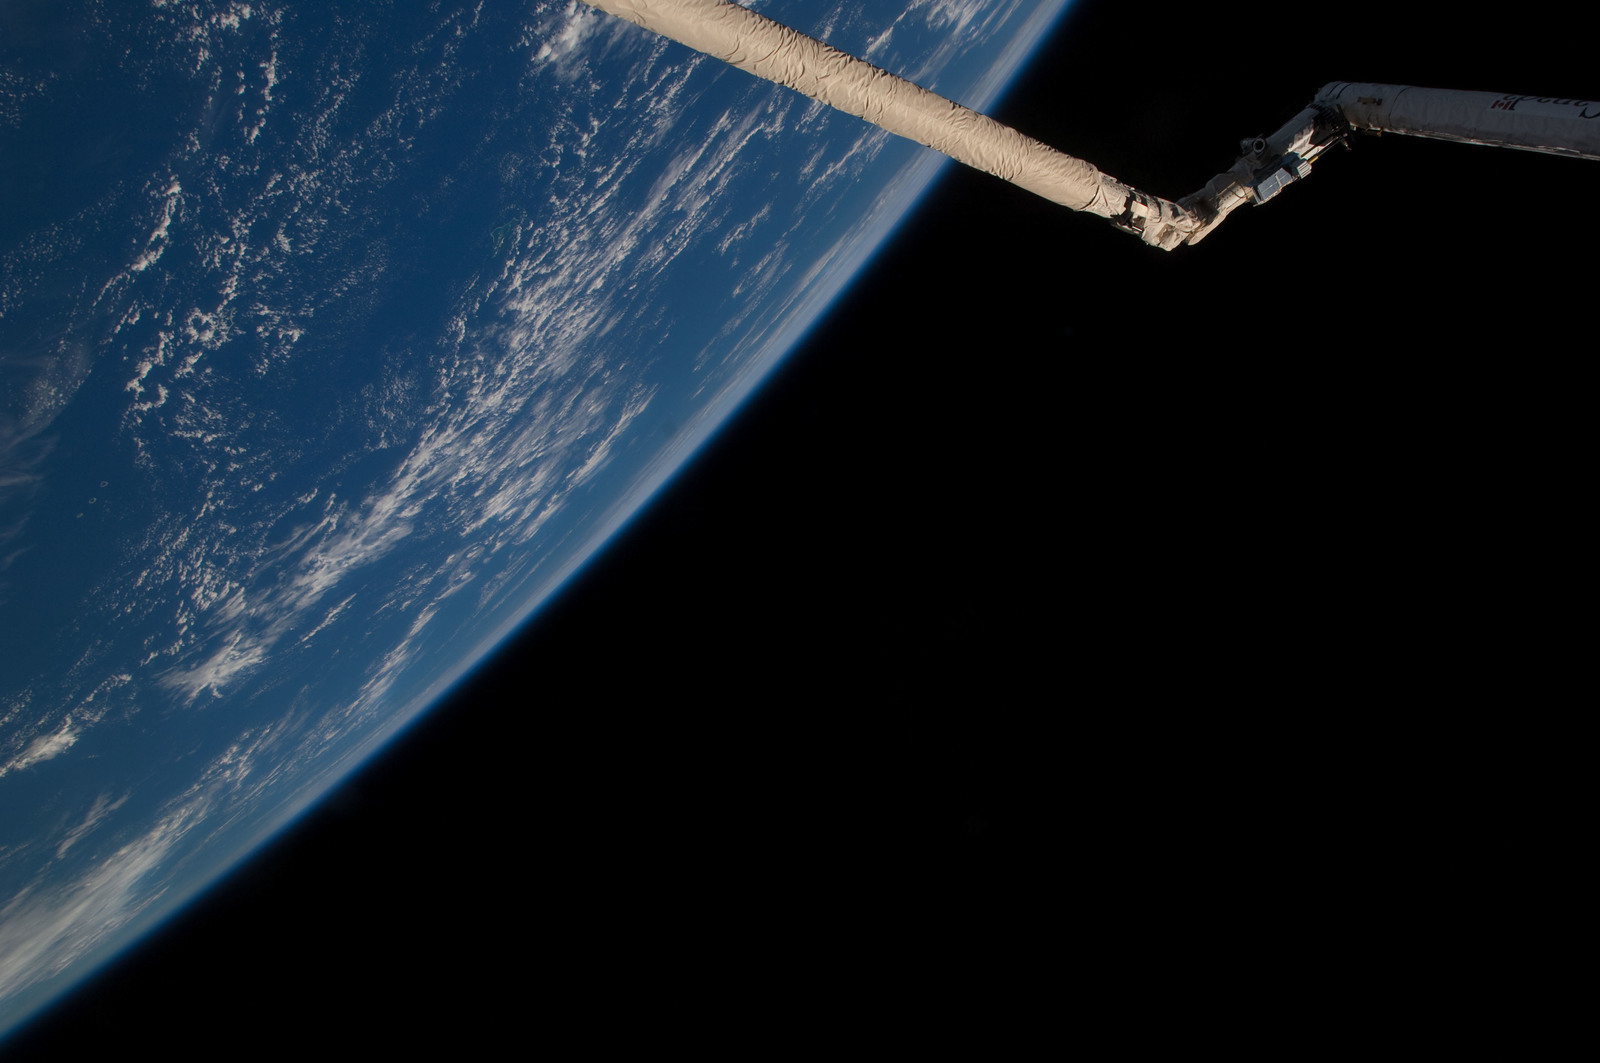 S126E025938 - STS-126 - View of SRMS/OBSS